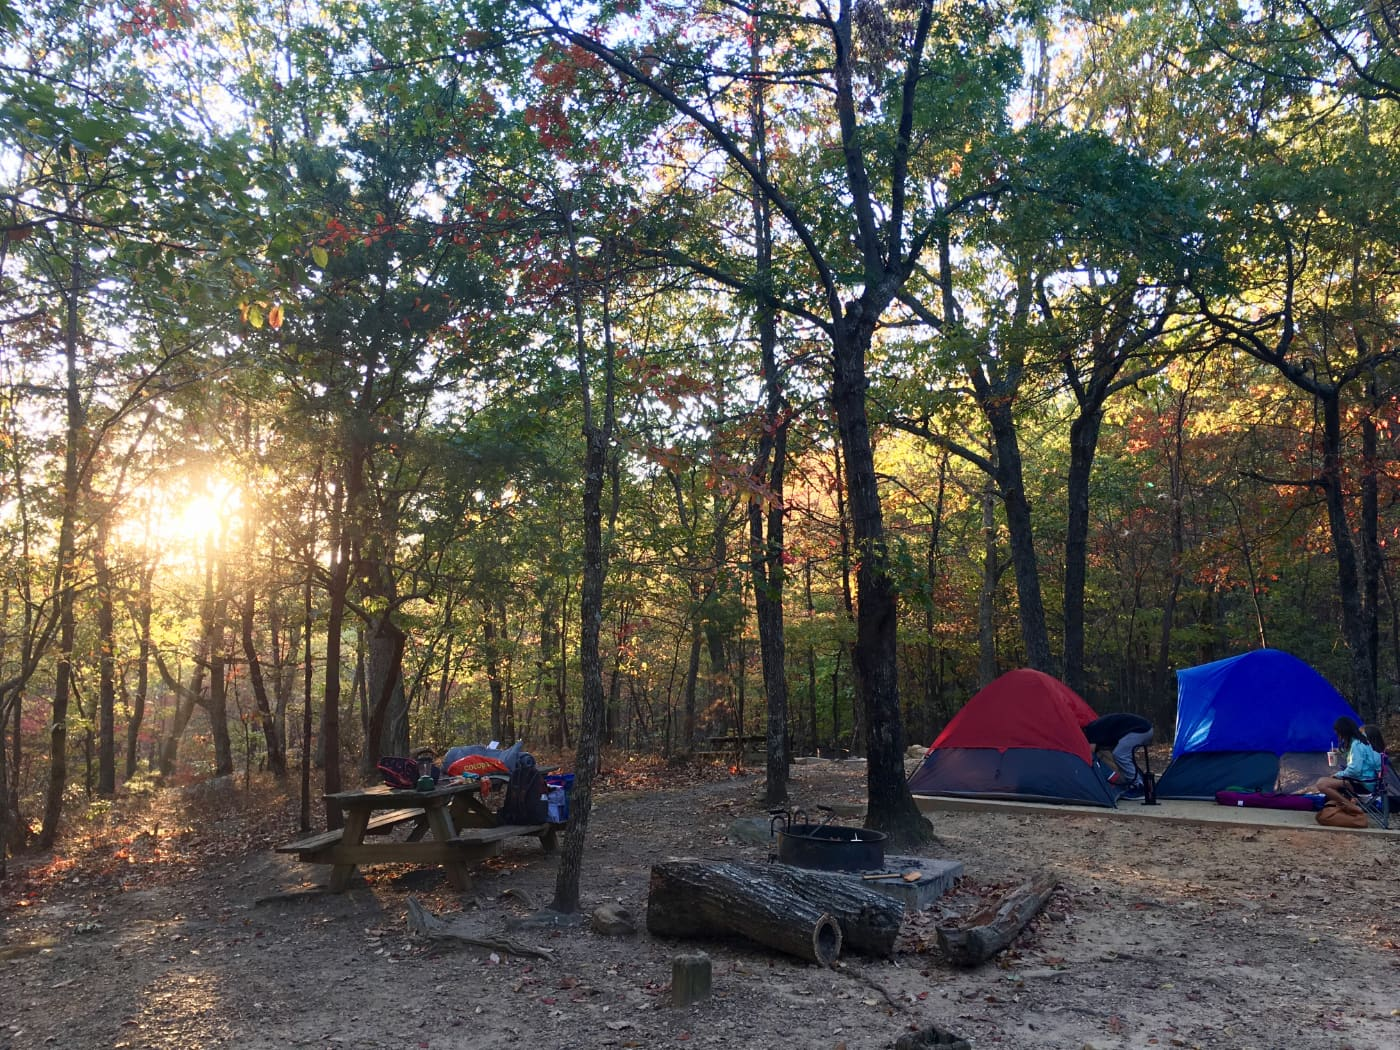 sun peeks through trees at wooded tent campsite with red and blue tents visible